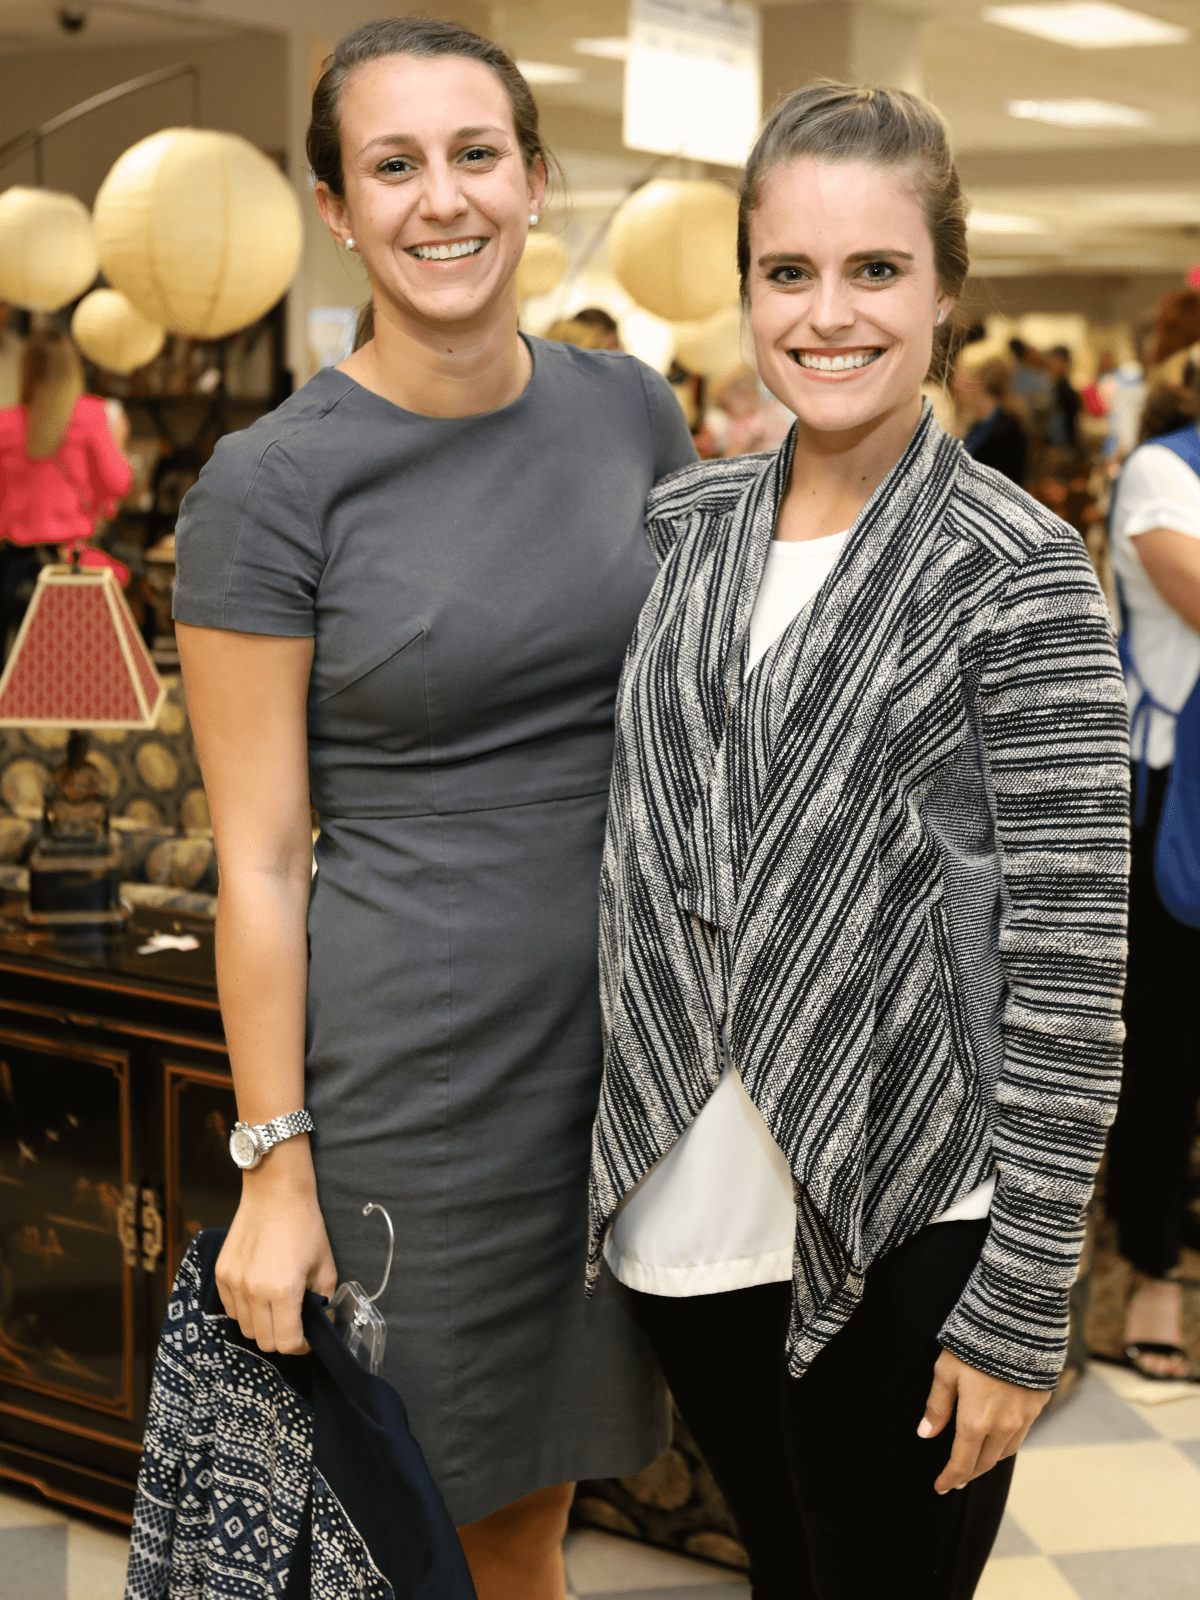 Houston, Blue Bird Circle Young Professional Partnership, Oct 2016, Riley Landry, Sydney Mafrige